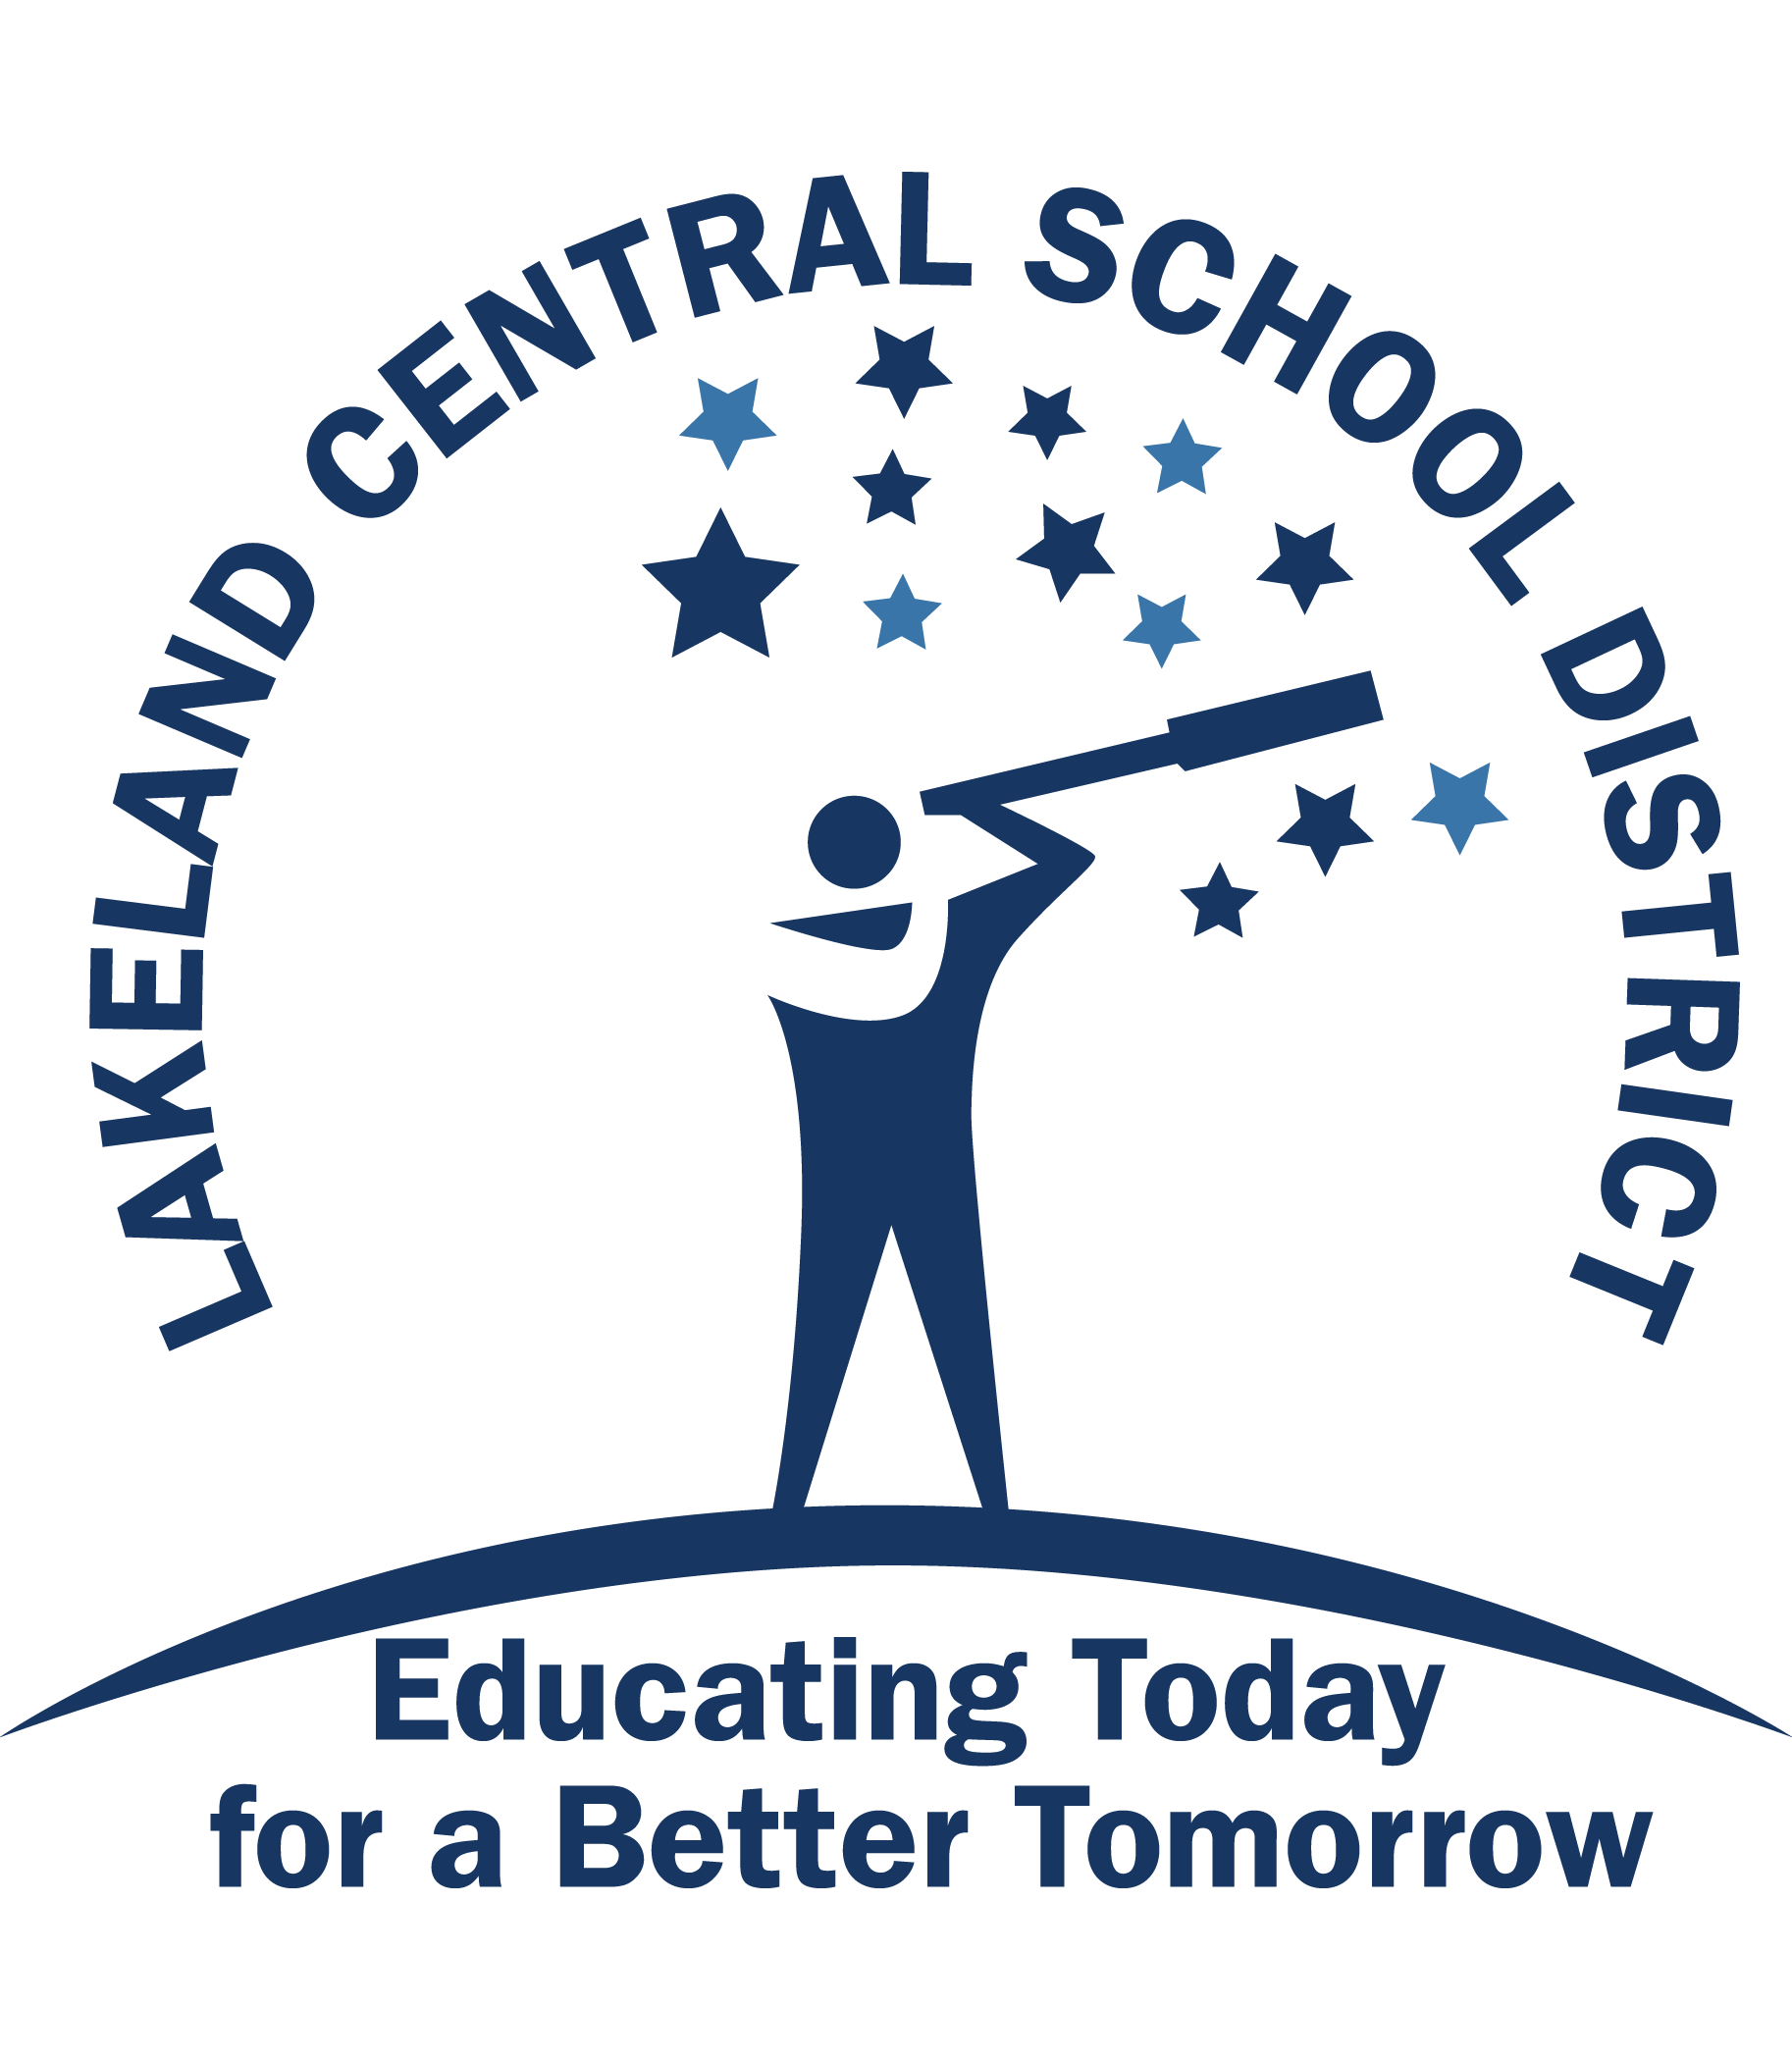 Lakeland Central School District logo